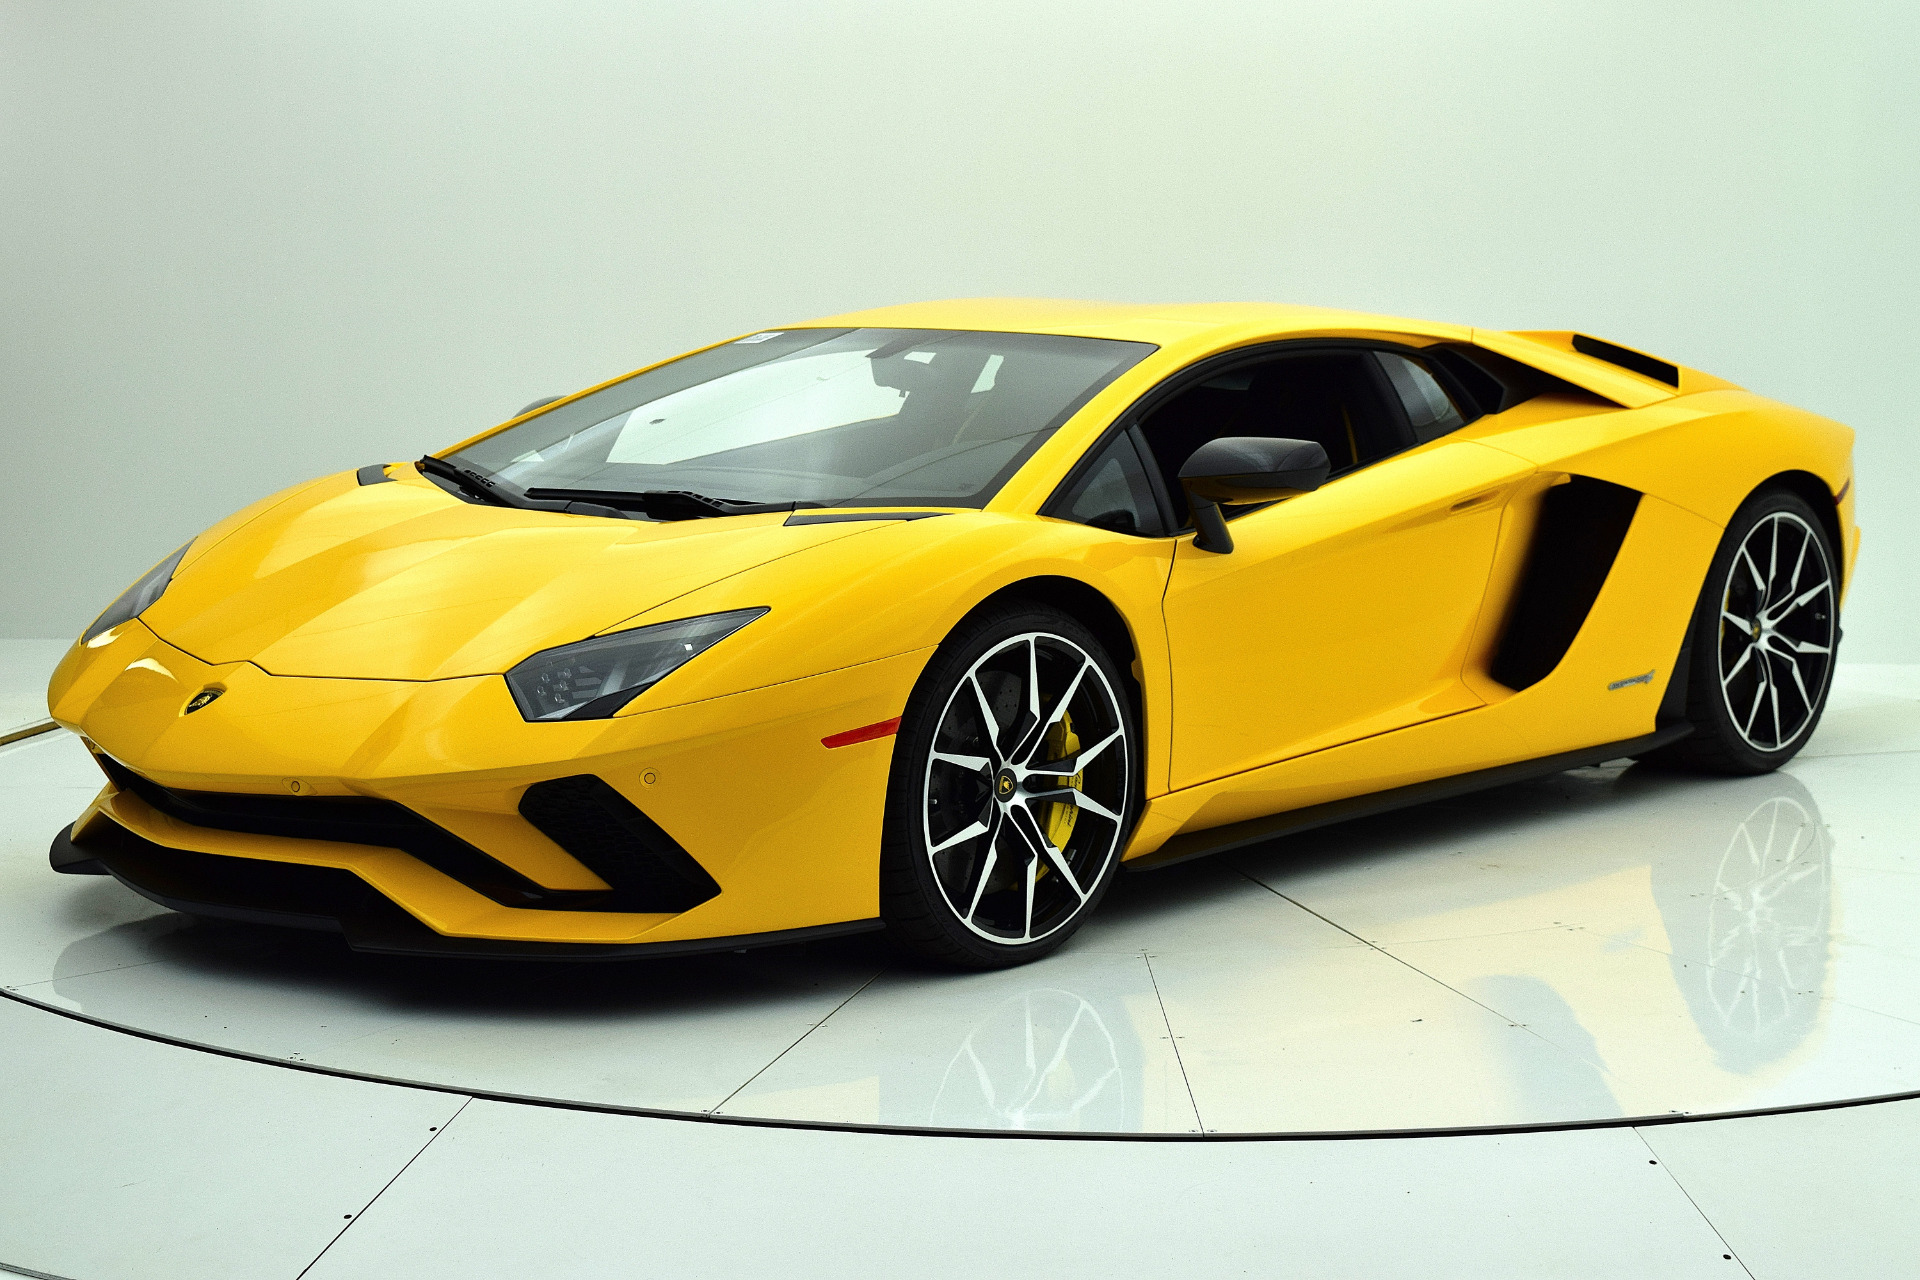 New 2018 Lamborghini Aventador S Coupe For Sale 467 855